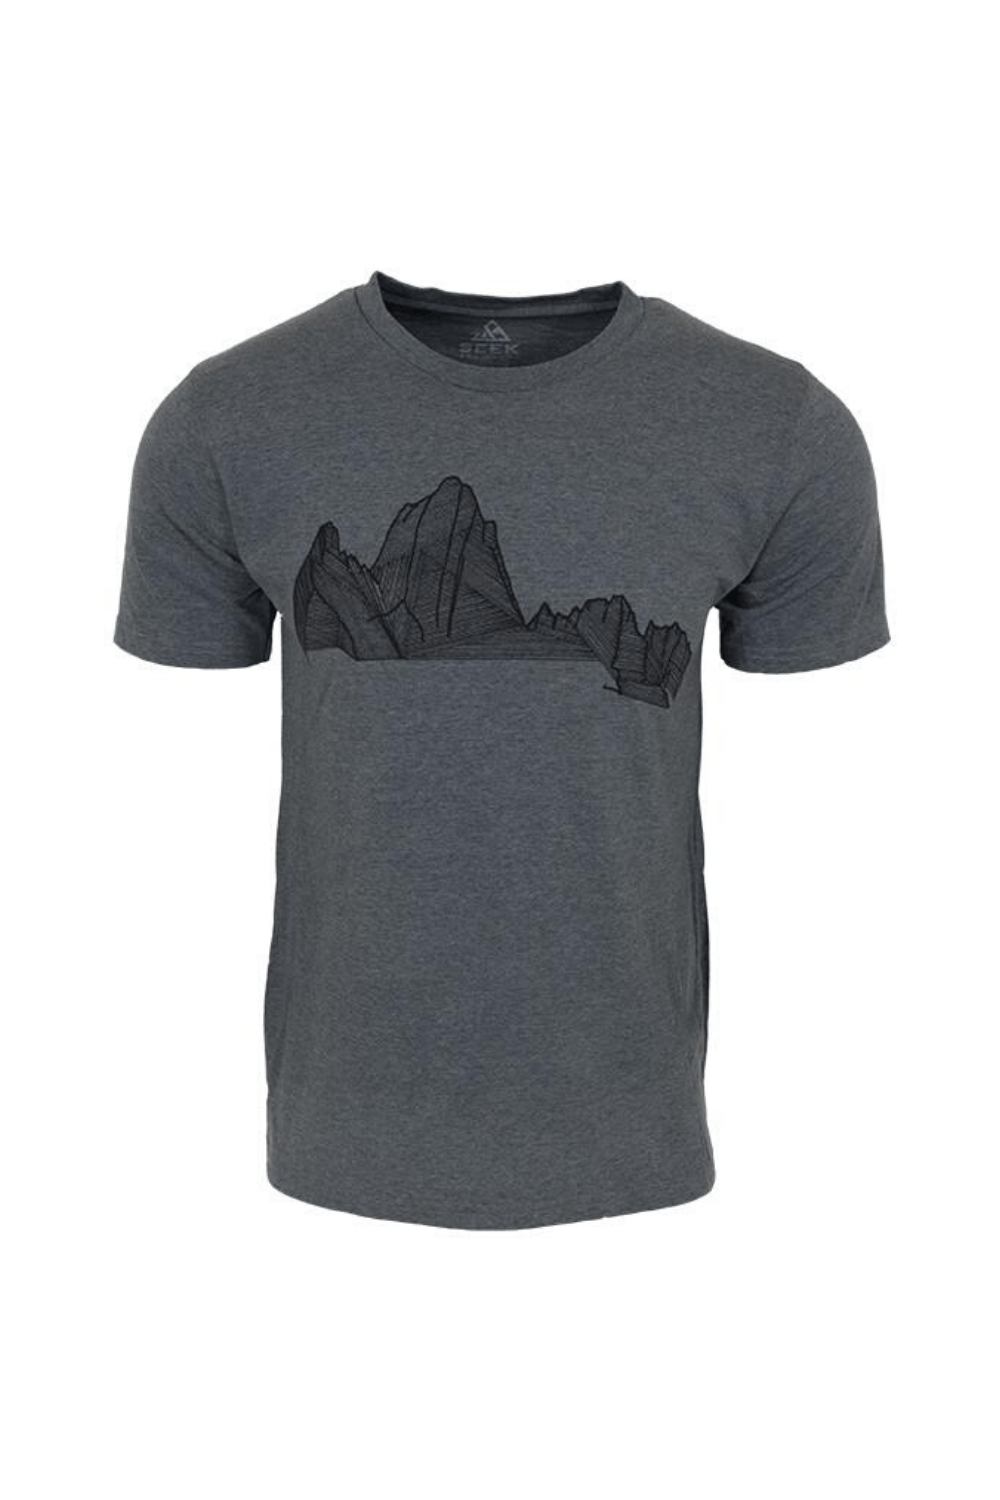 Seek Dry Goods Men's T-Shirts Fitz T-Shirt